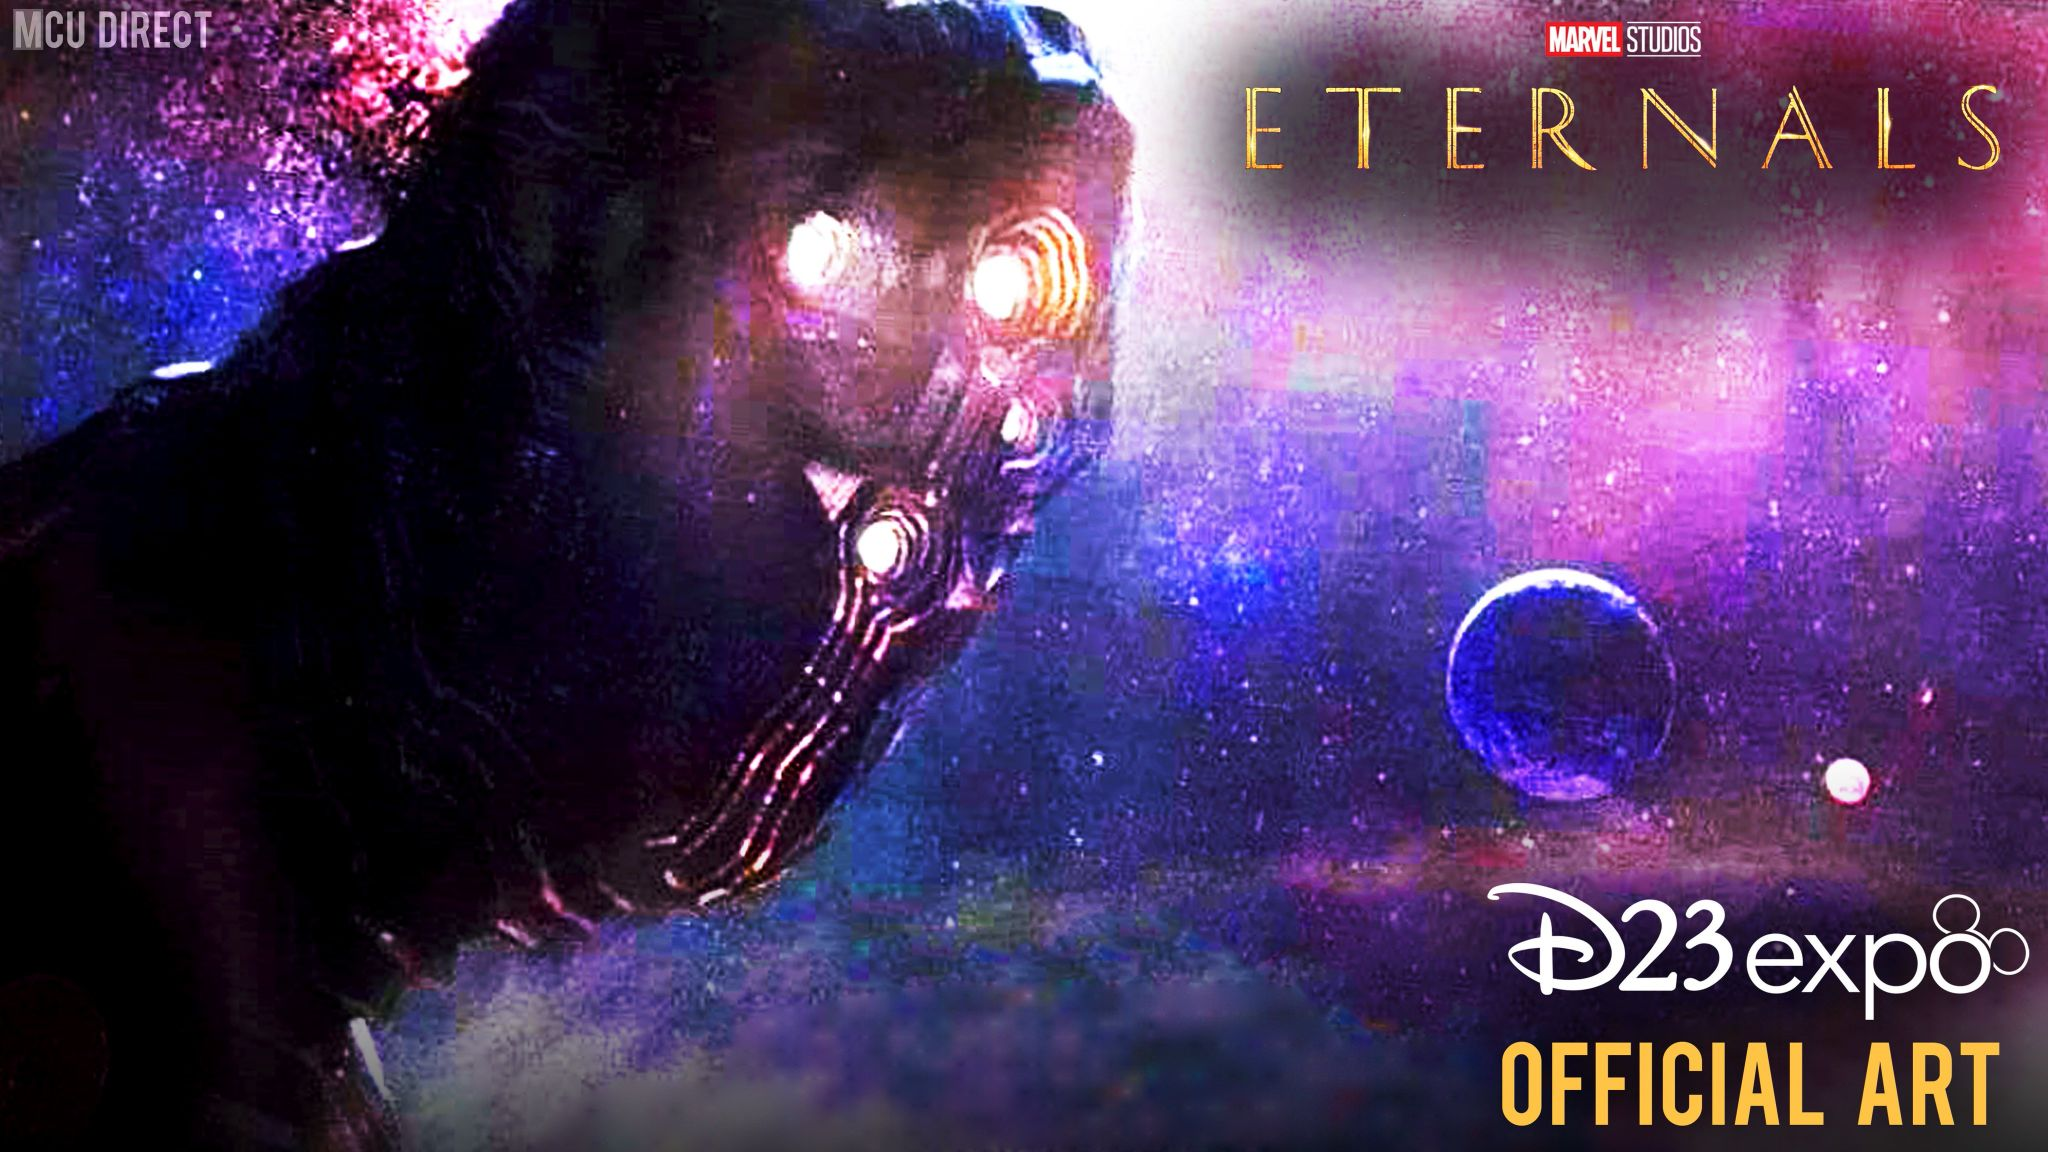 The Eternals Celestial Concept Art D23